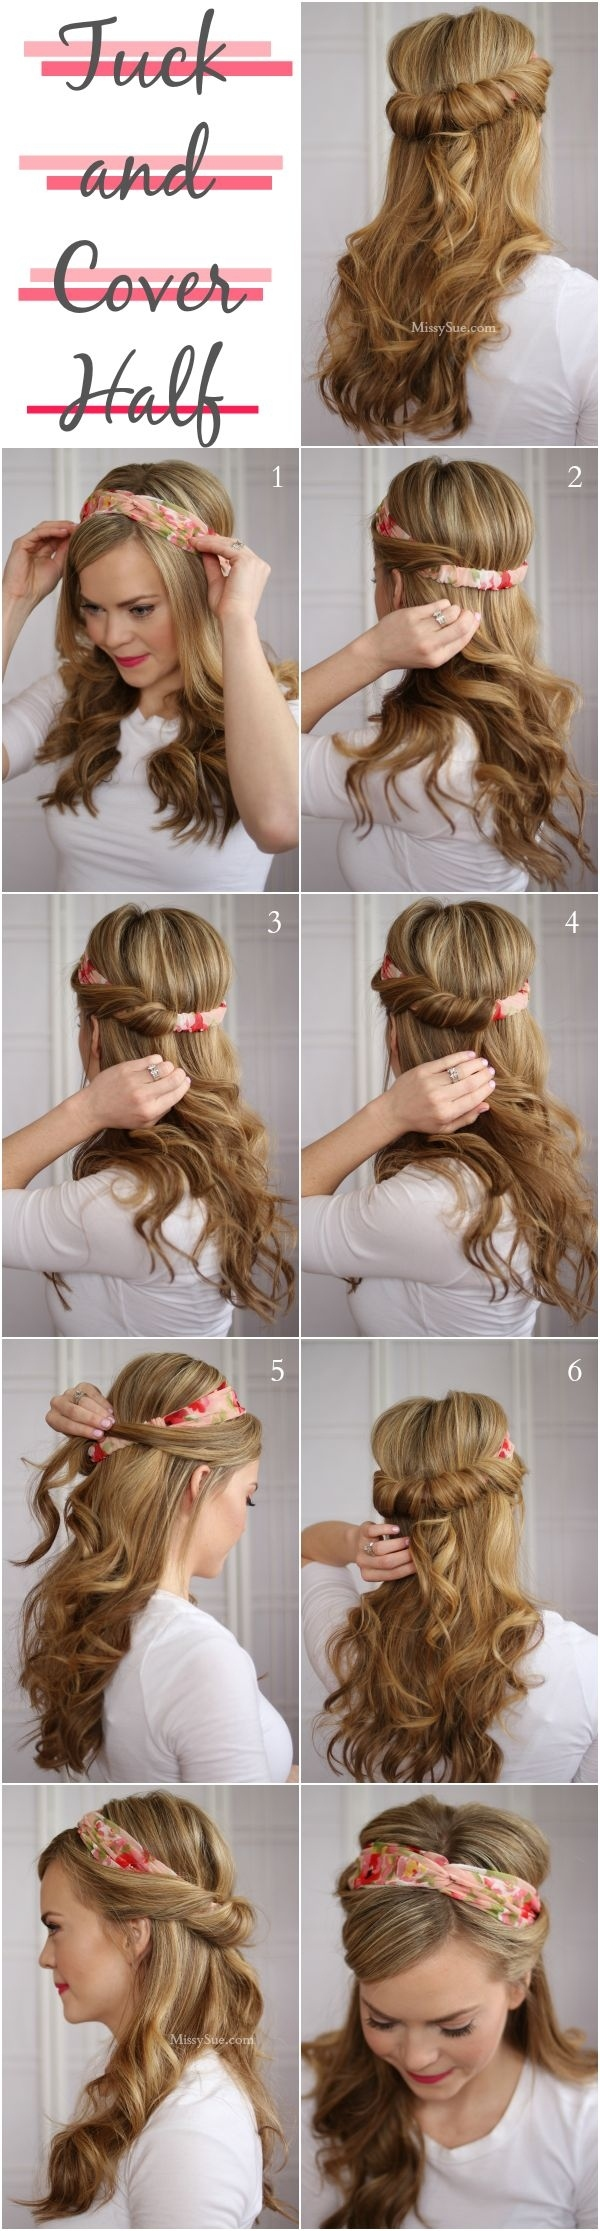 lazy girl hairstyling hacks